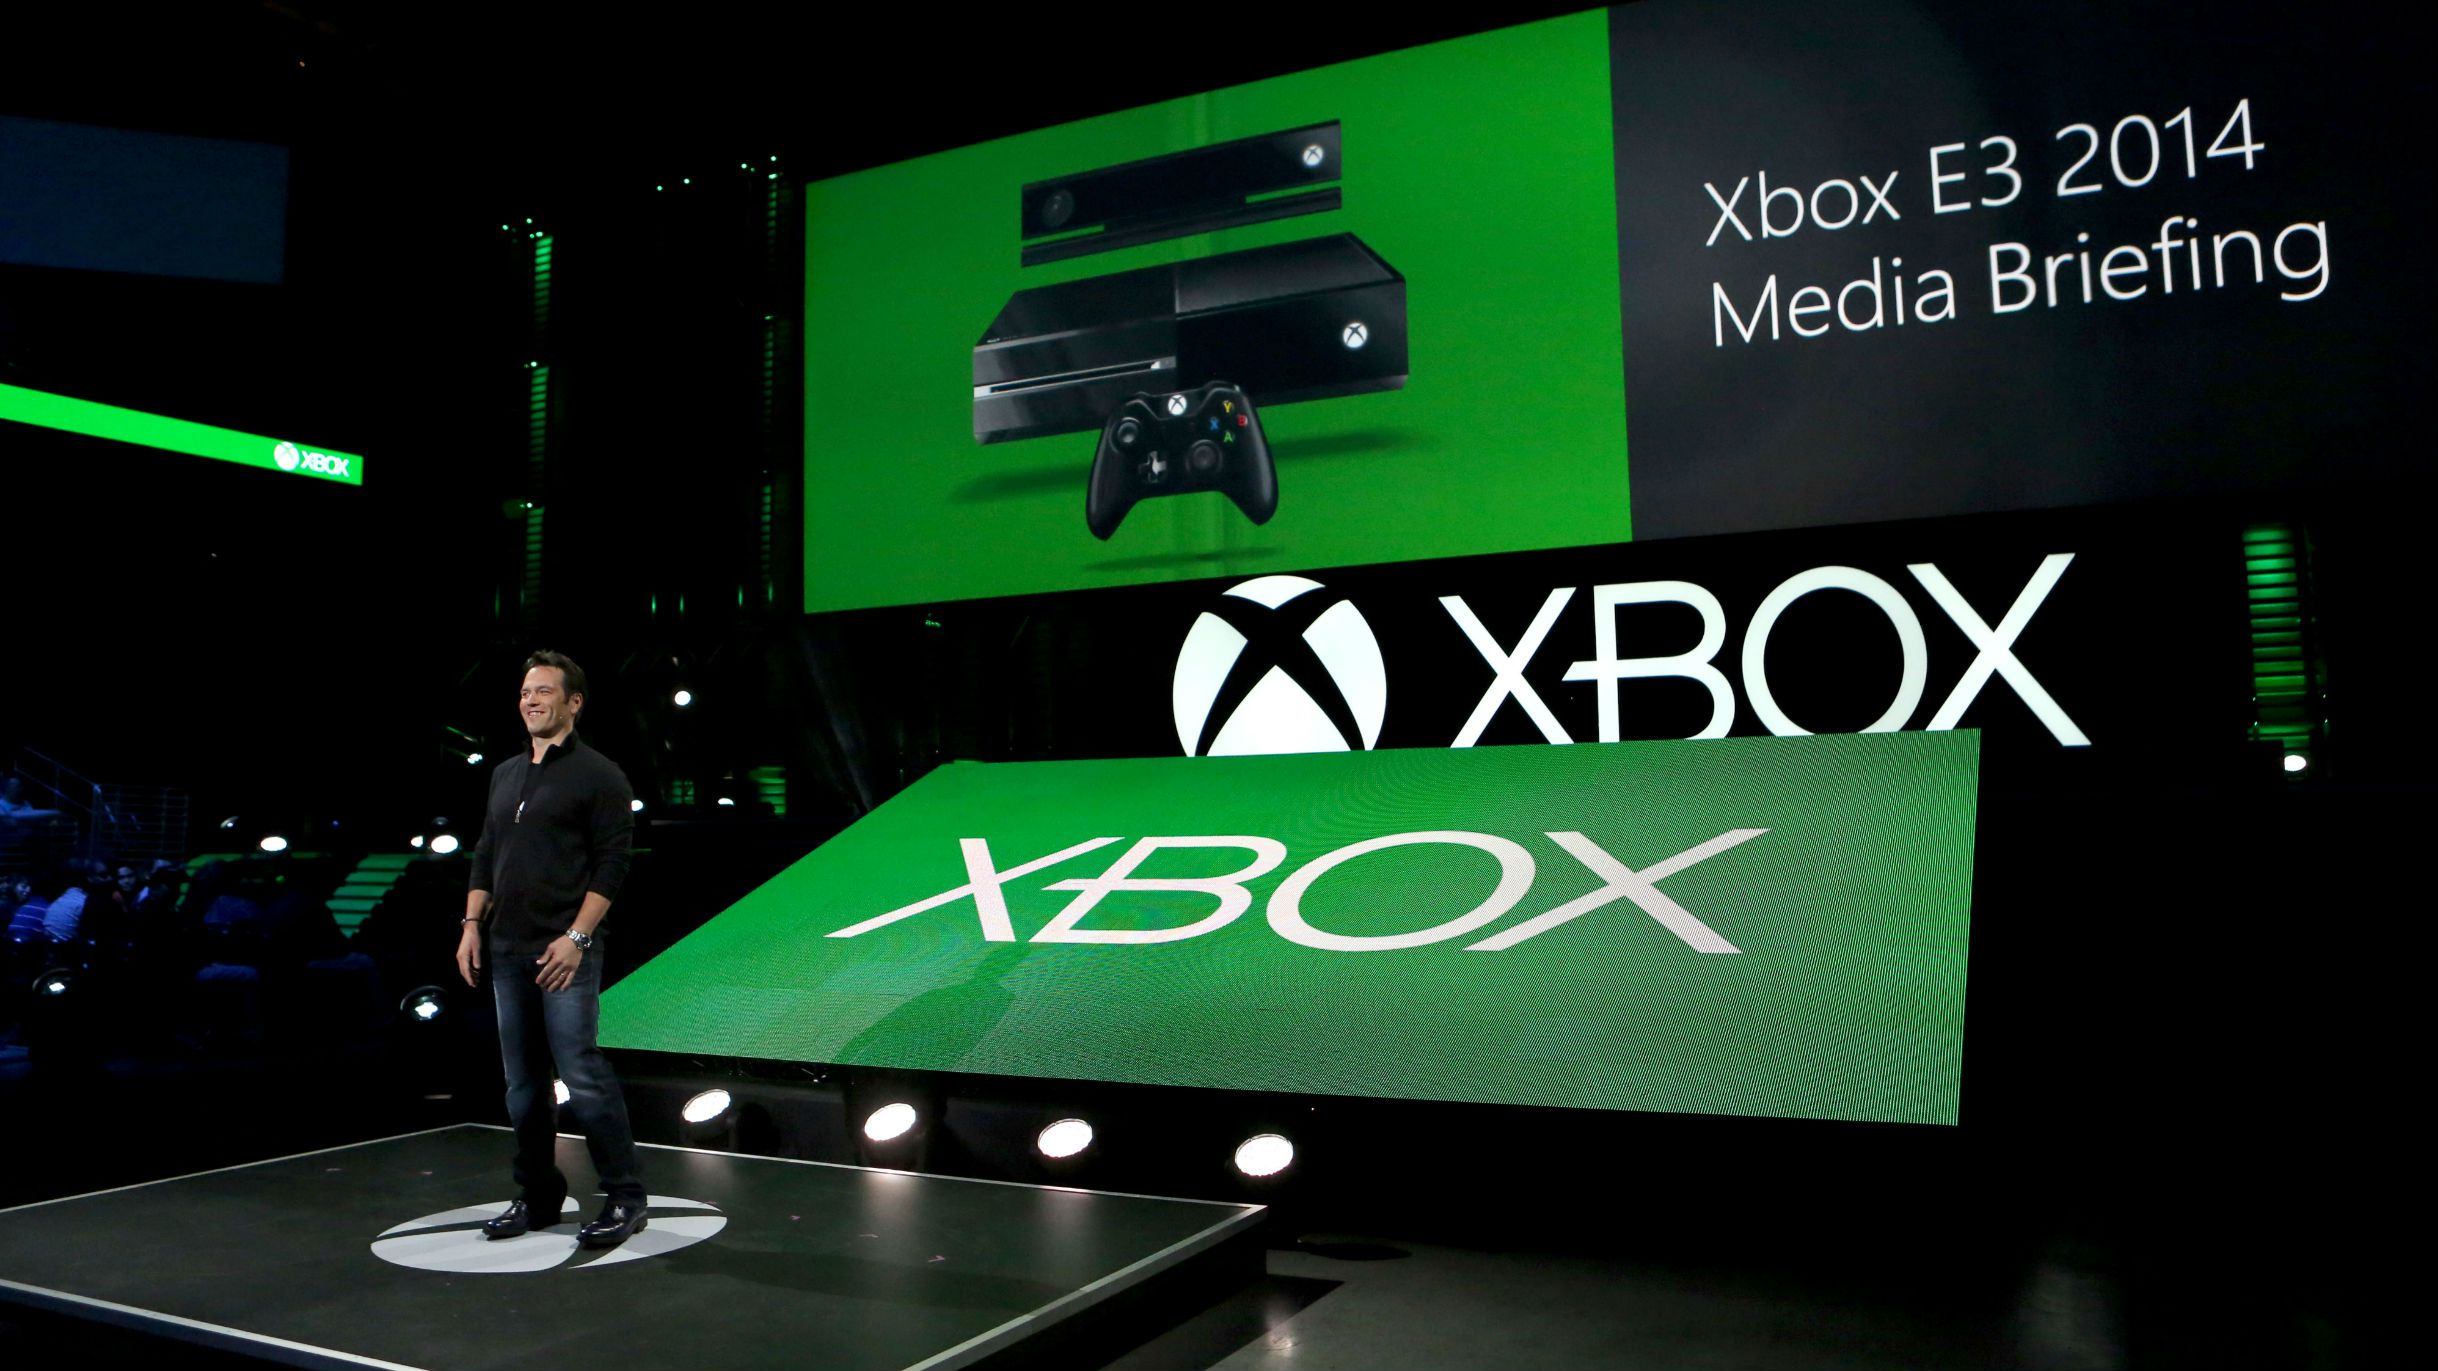 Phil Spencer, Head of Xbox, at the Xbox E3 2014 Media Briefing at the Galen Center on Monday, June 9, 2014 in Los Angeles.